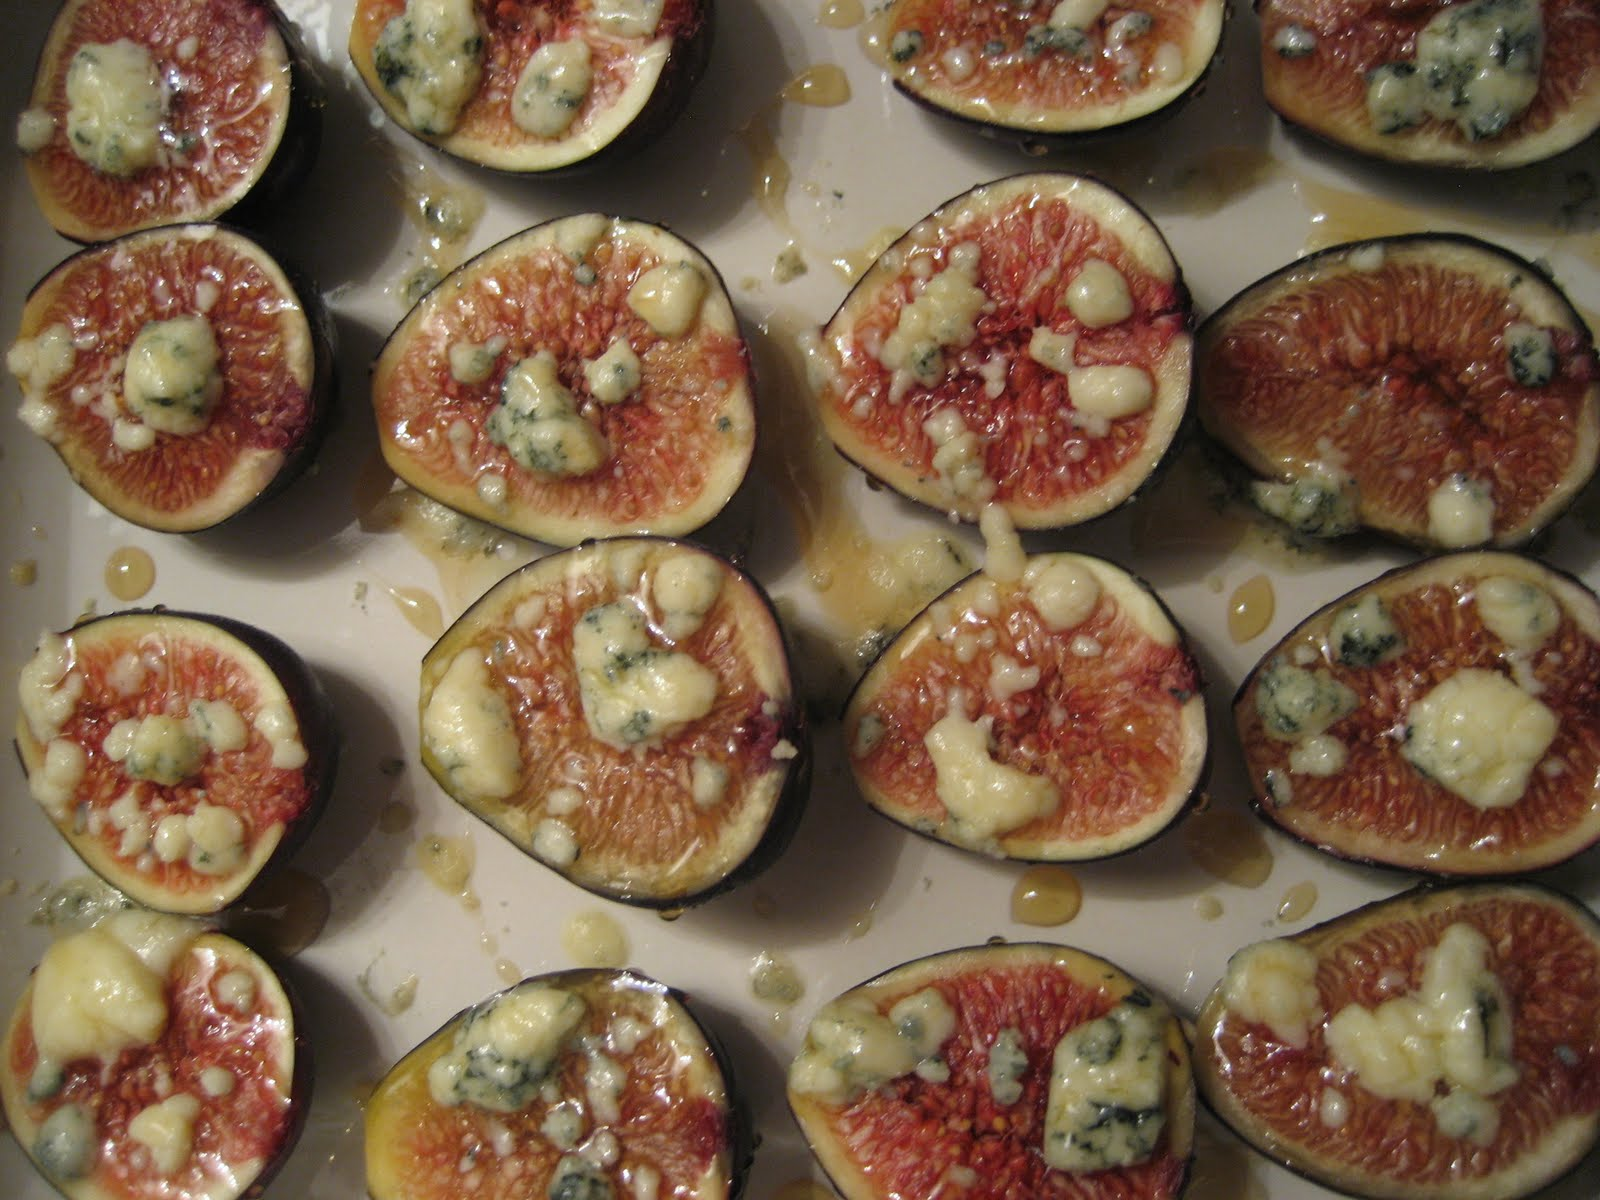 ... Food: Roasted Black Mission Figs with Crumbled Blue Cheese and Honey